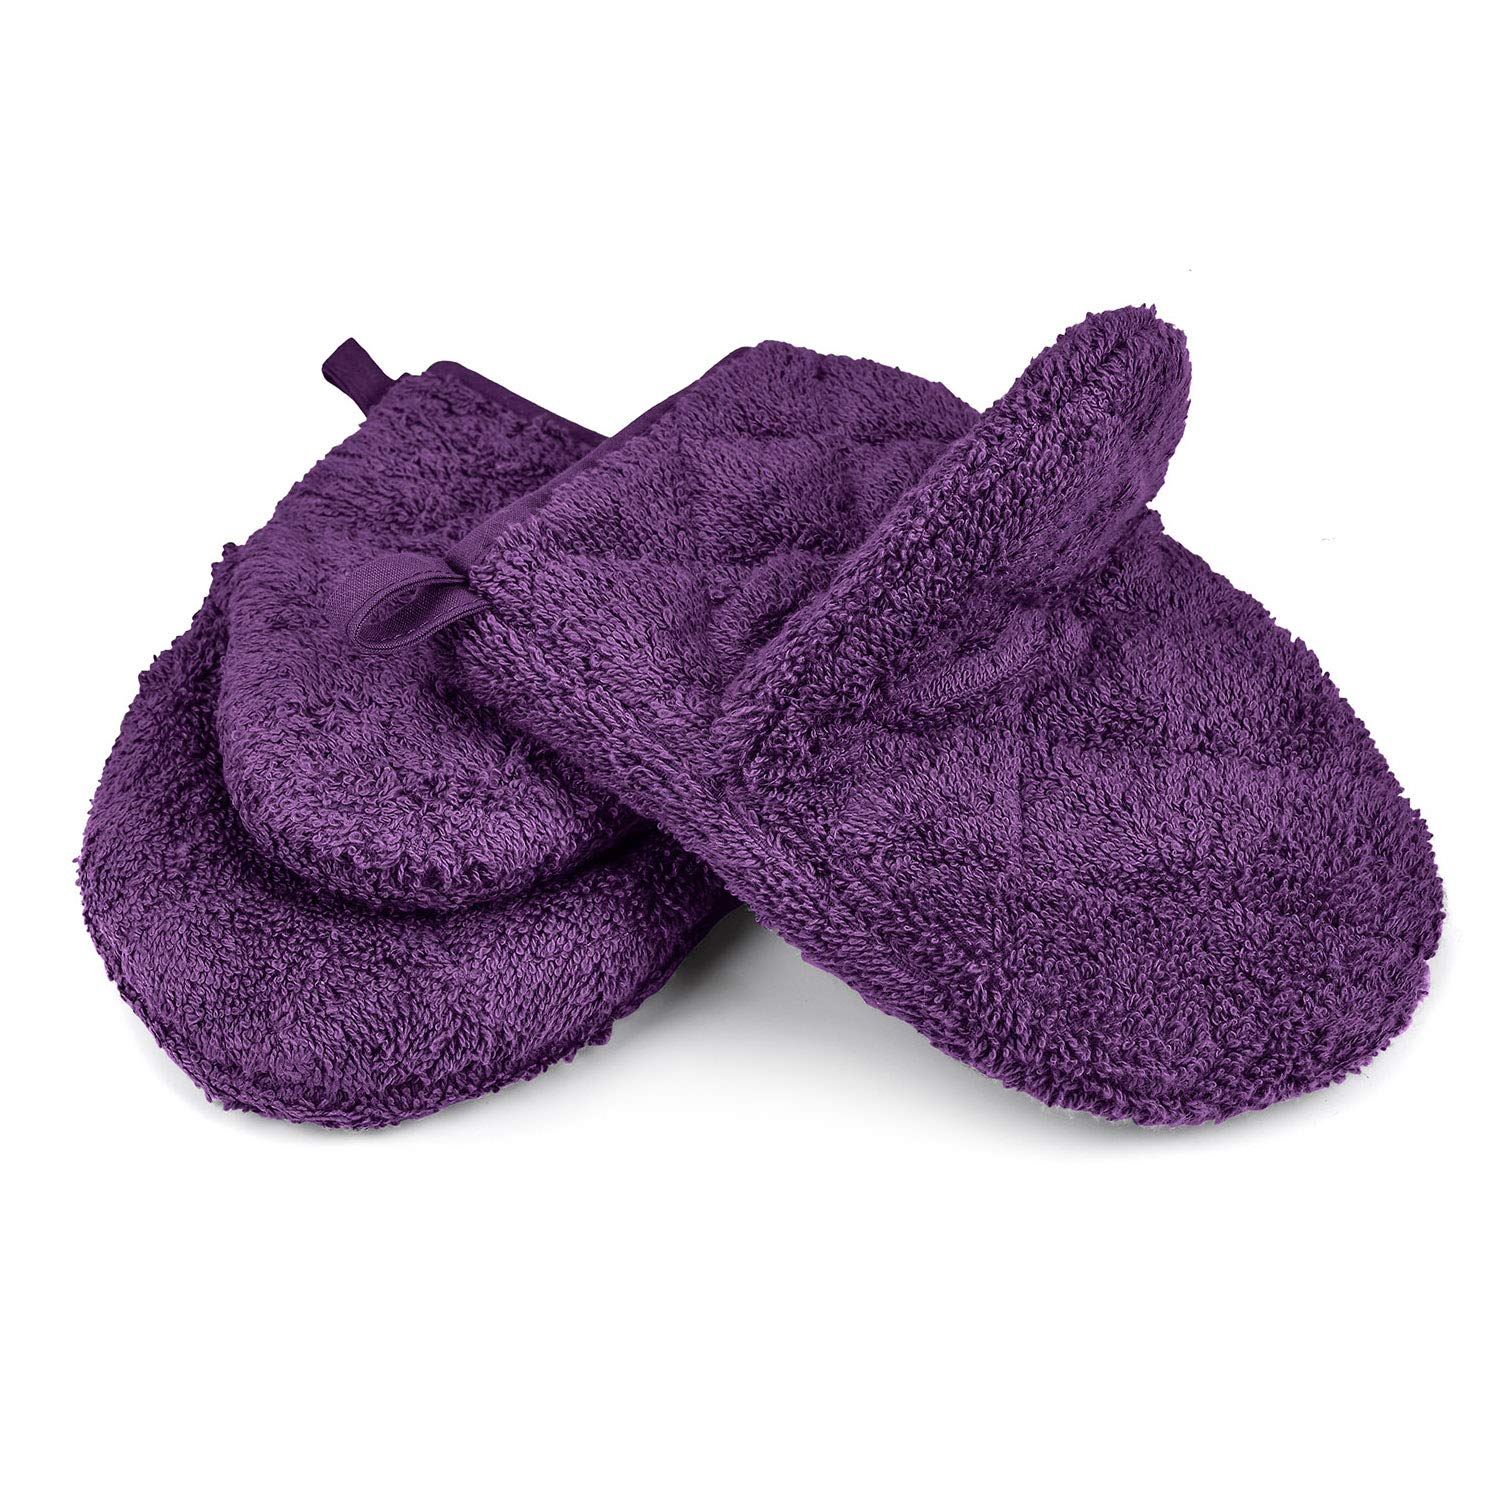 VEEYOO 100% Cotton Oven Mitts, Everyday Kitchen Heat Resistant Oven Mitt Set, Machine Washable Terry Oven Mitts Baking Gloves (Light Purple 7.5x5.5 Inches, Set of 2)